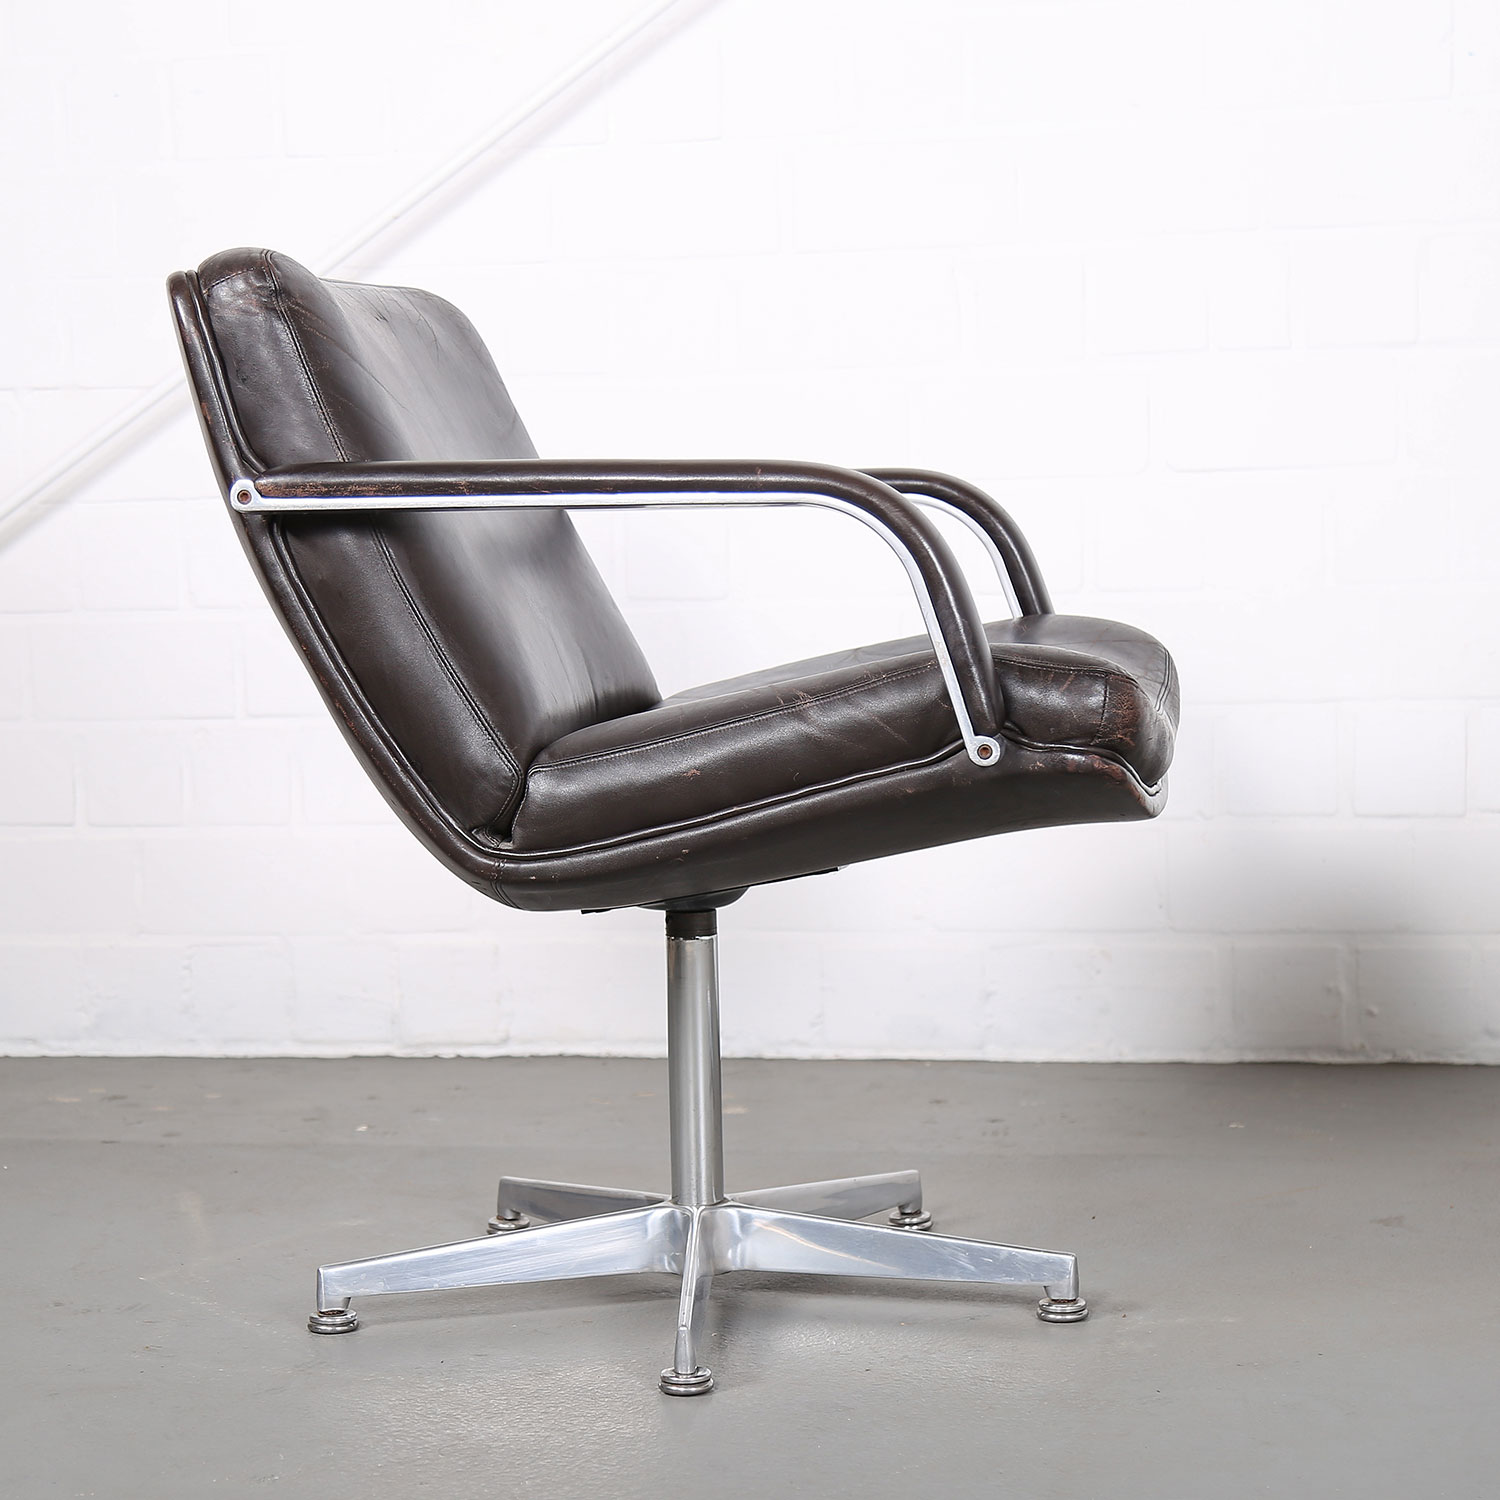 F378 polstersessel ledersessel chair geoffrey harcourt for Designer chairs from the 60s